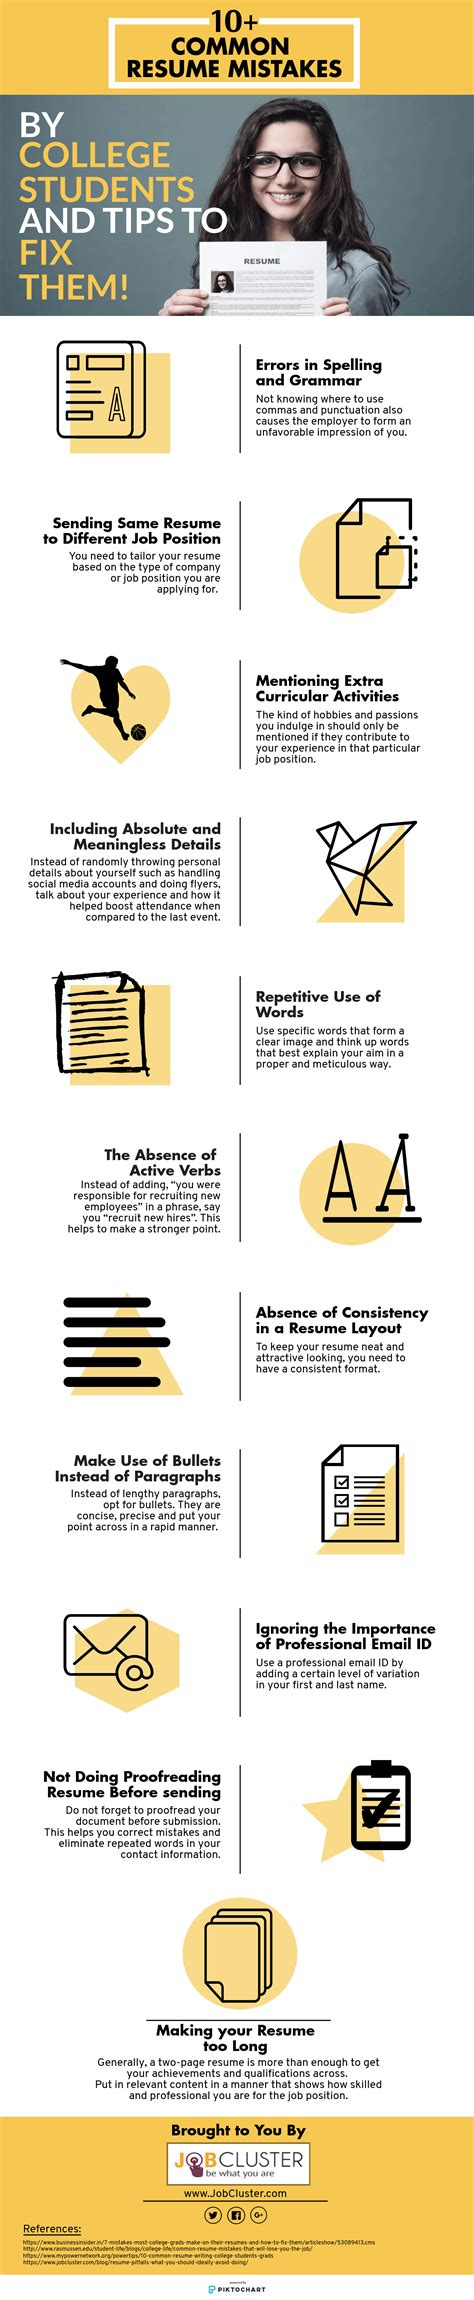 11 common resume mistakes by college students and how to